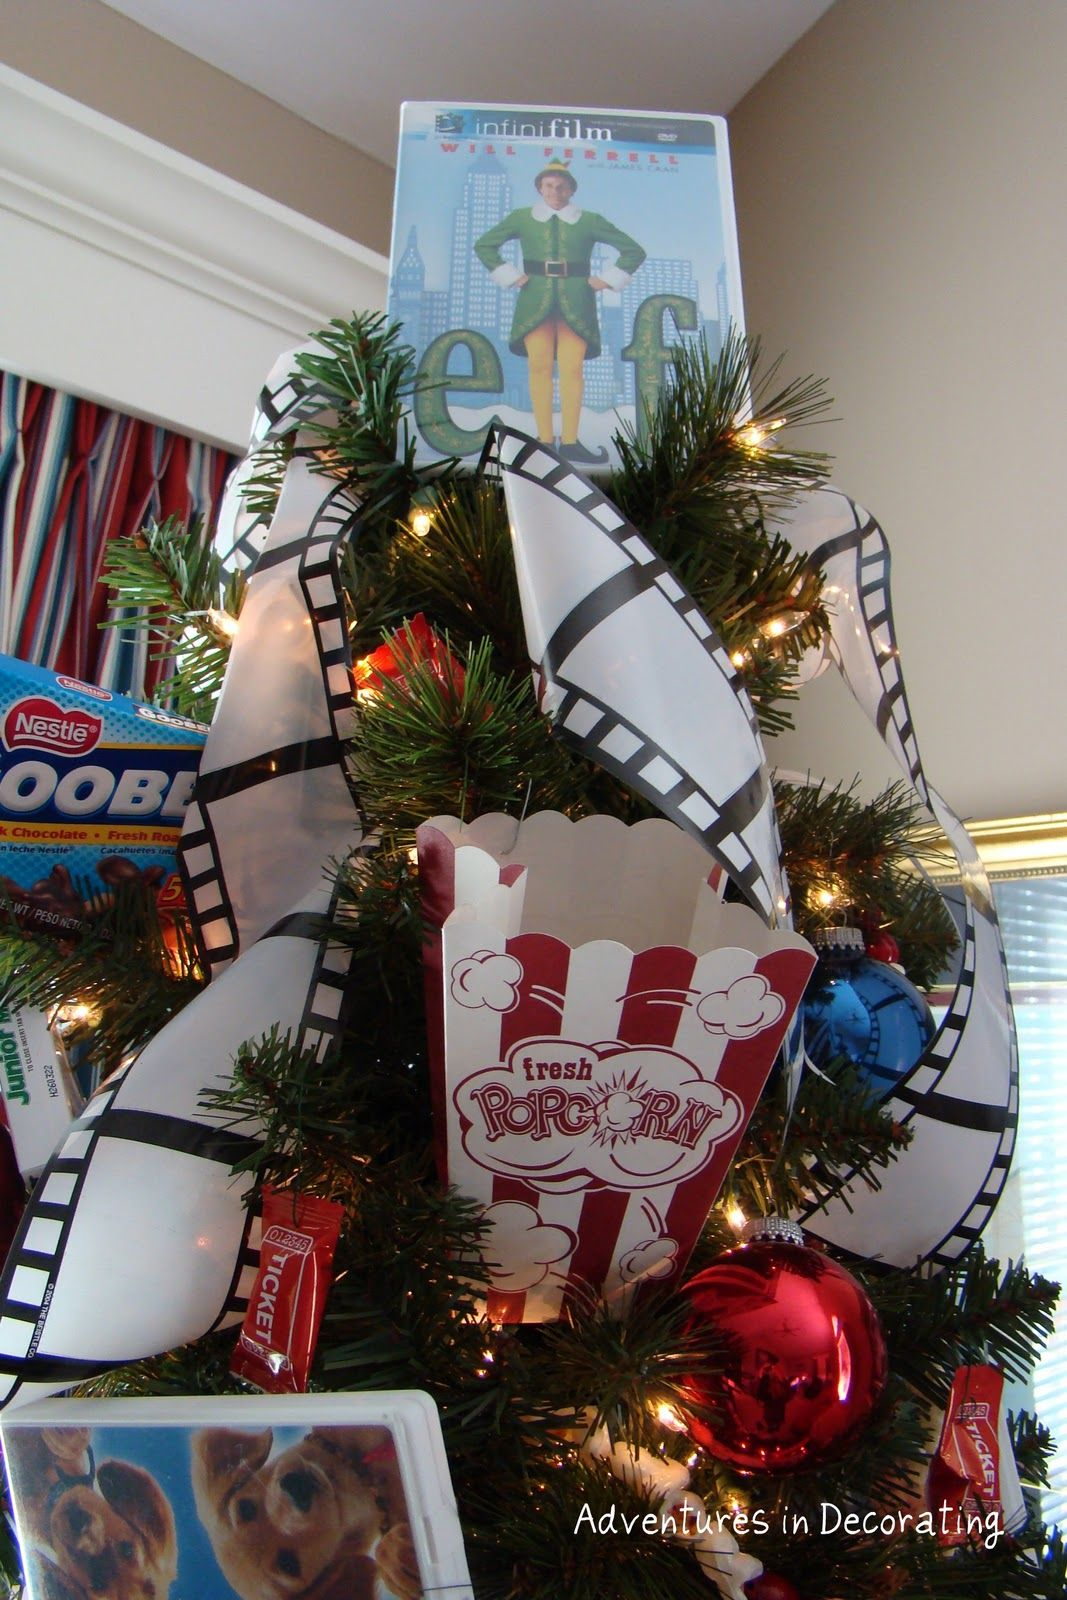 Adventures in Decorating Christmas tree themes